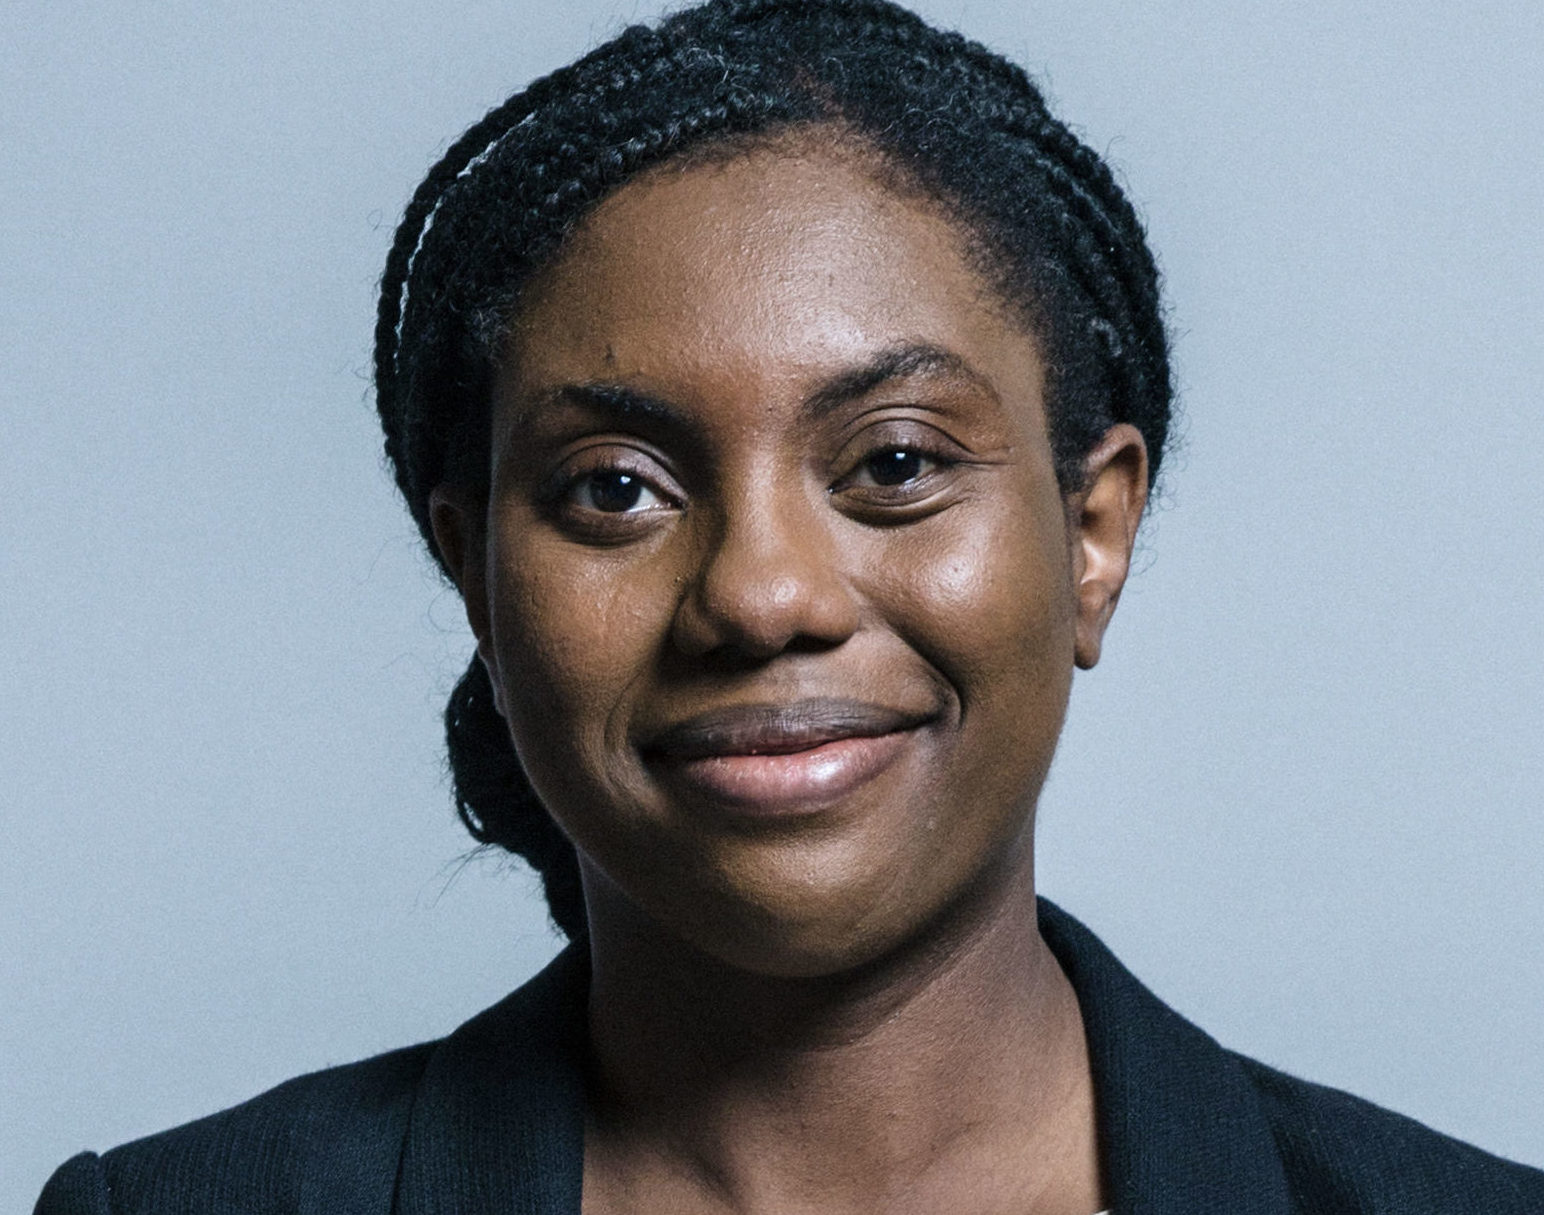 New junior equalities minister Kemi Badenoch abstained from Northern Ireland same-sex marriage vote